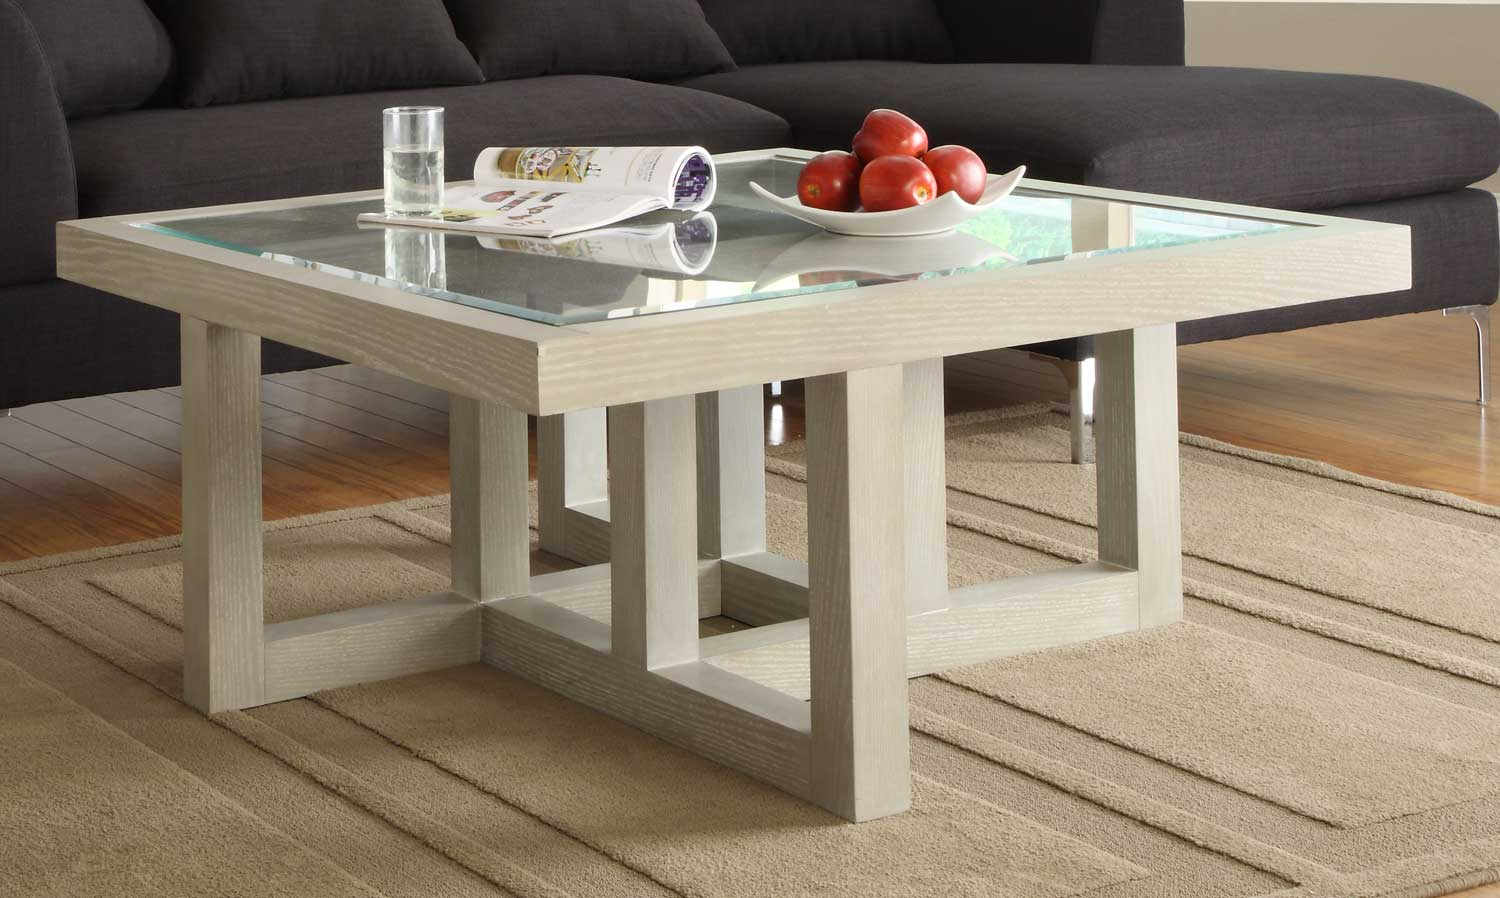 Homelegance Guerrero Square Coffee Table Set Grey C3444 01 At